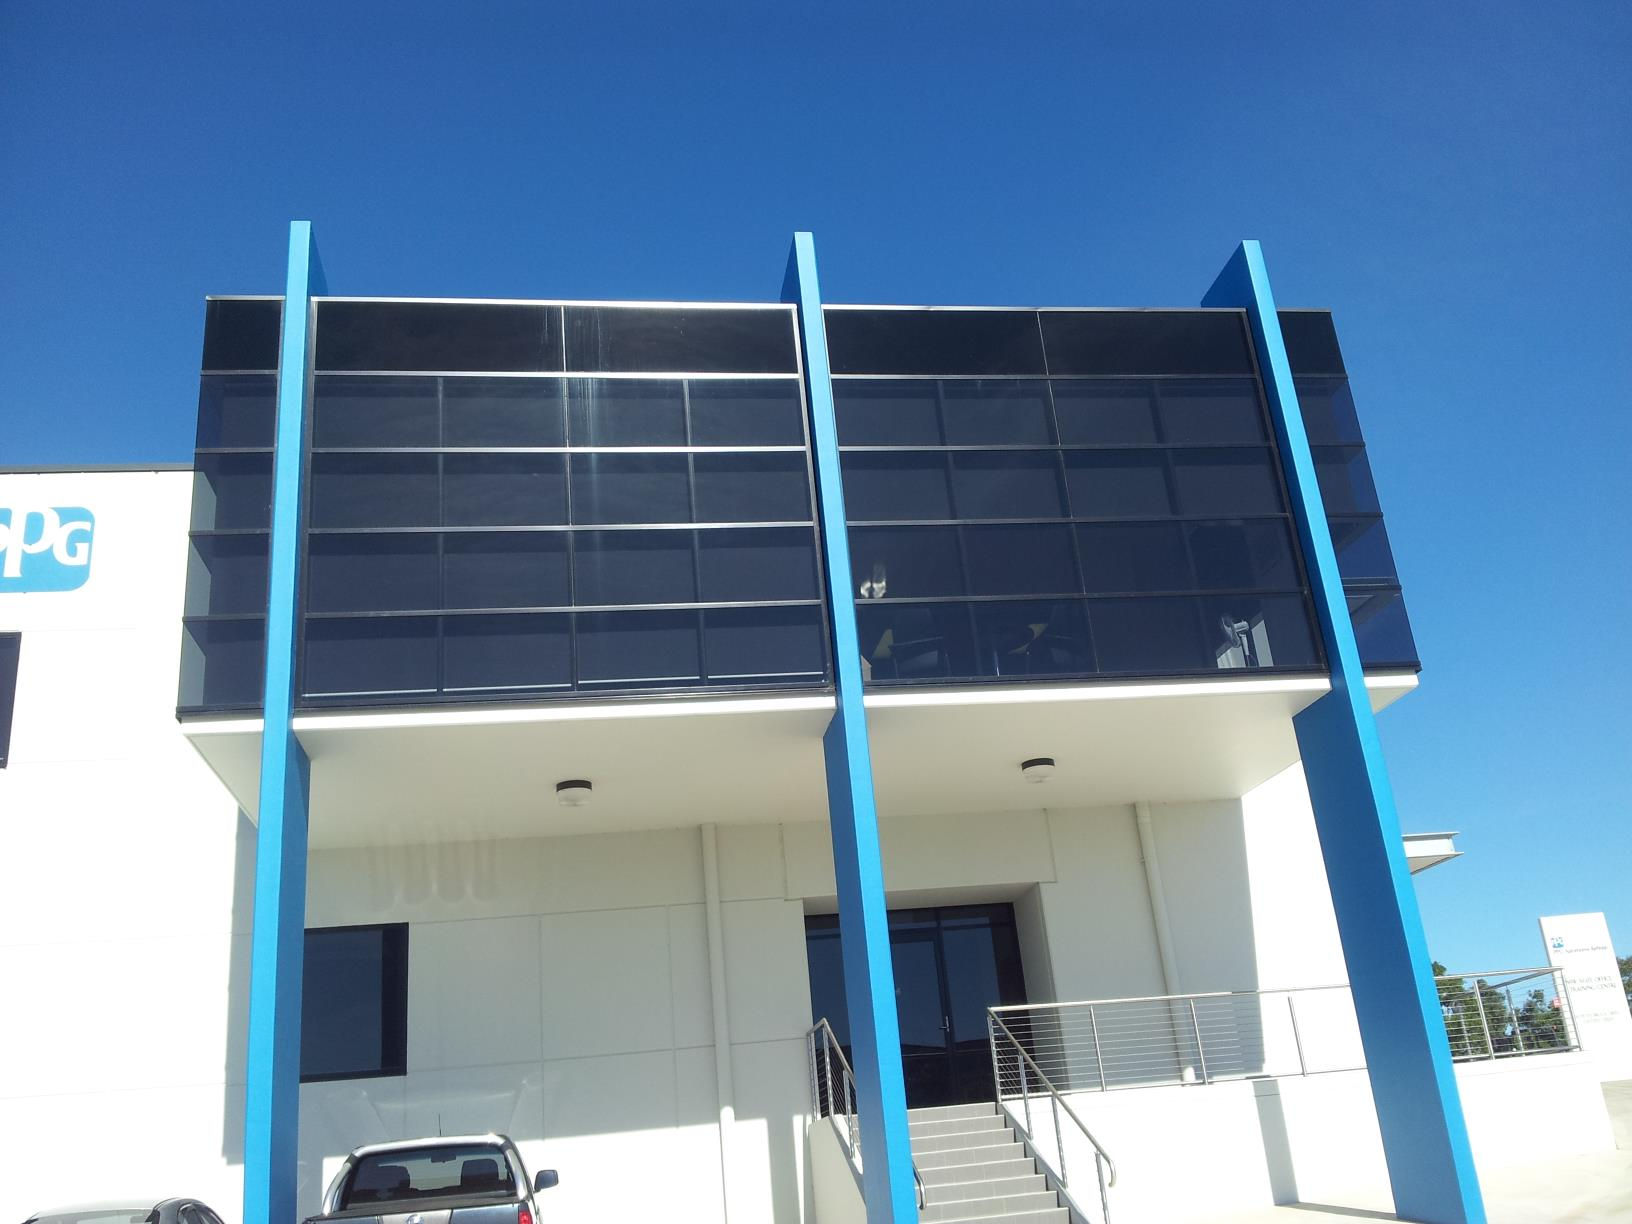 office-commercial-window-tinting-film-sydney-privacy reduce-heat-frenchs-forest-allambie-heights-bea